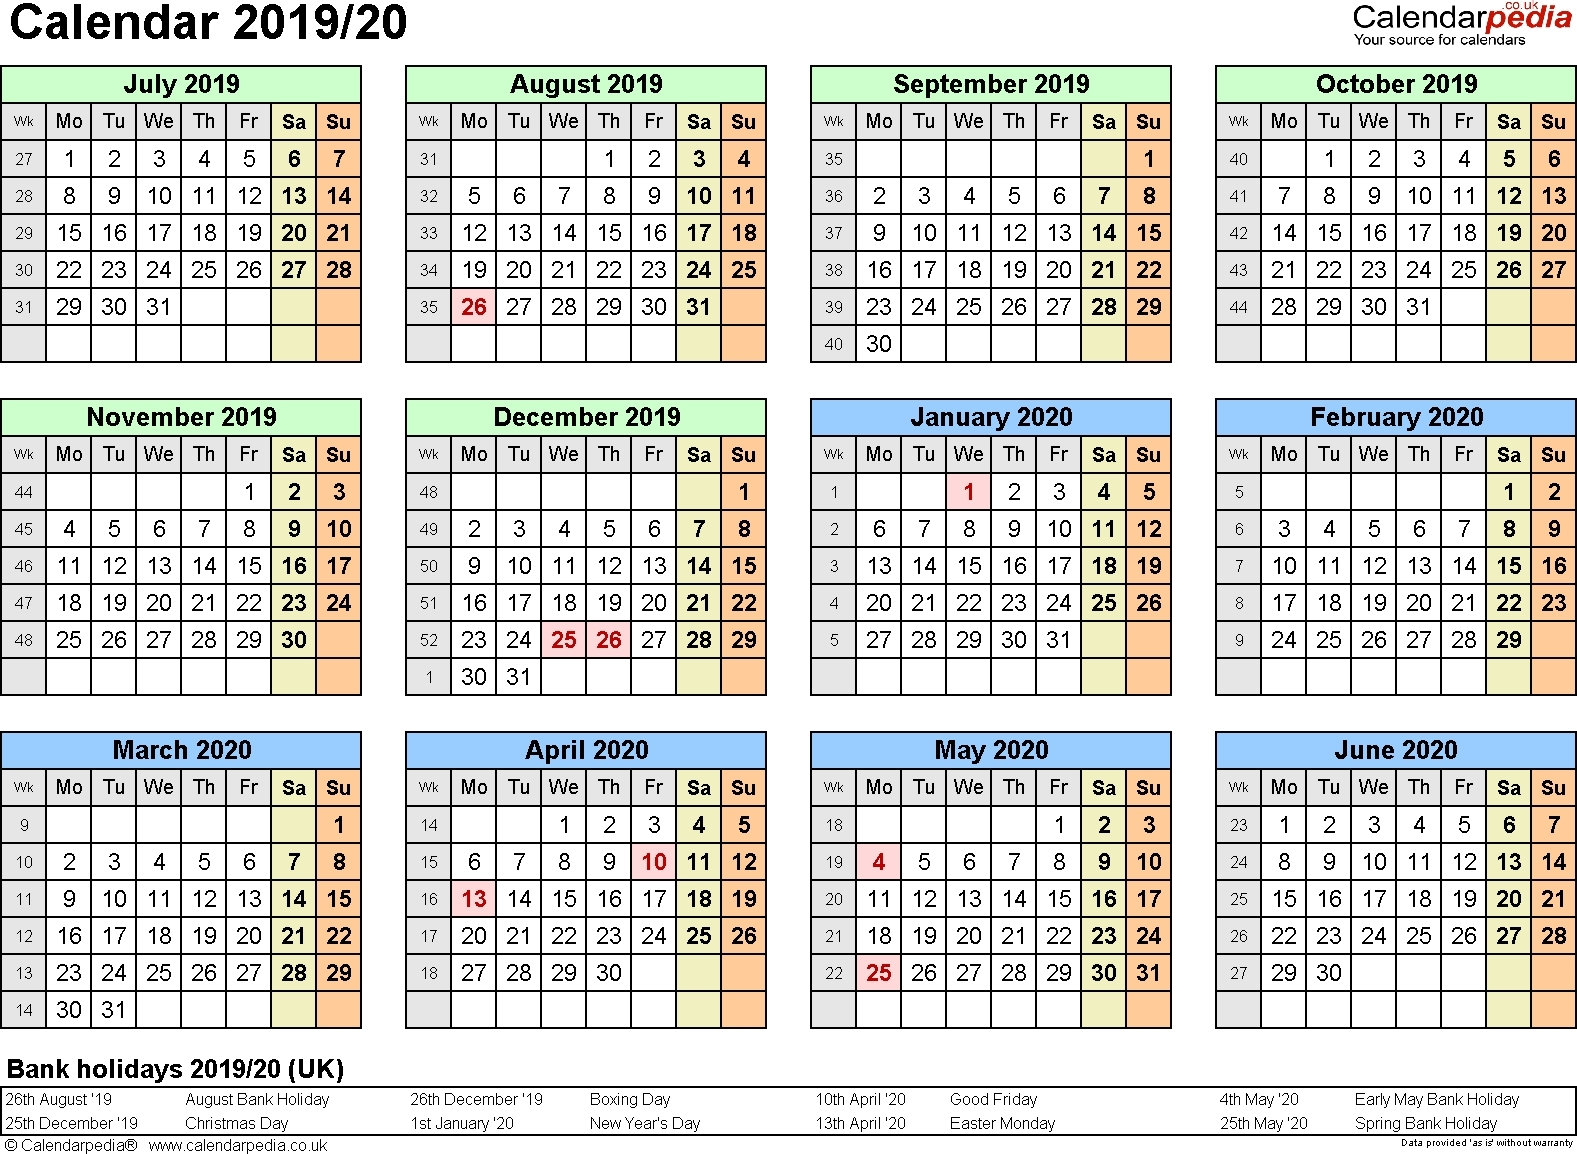 Extraordinary Calendar 2019 And 2020 Nz • Printable Blank Calendar_School Calendar 2020 Nz